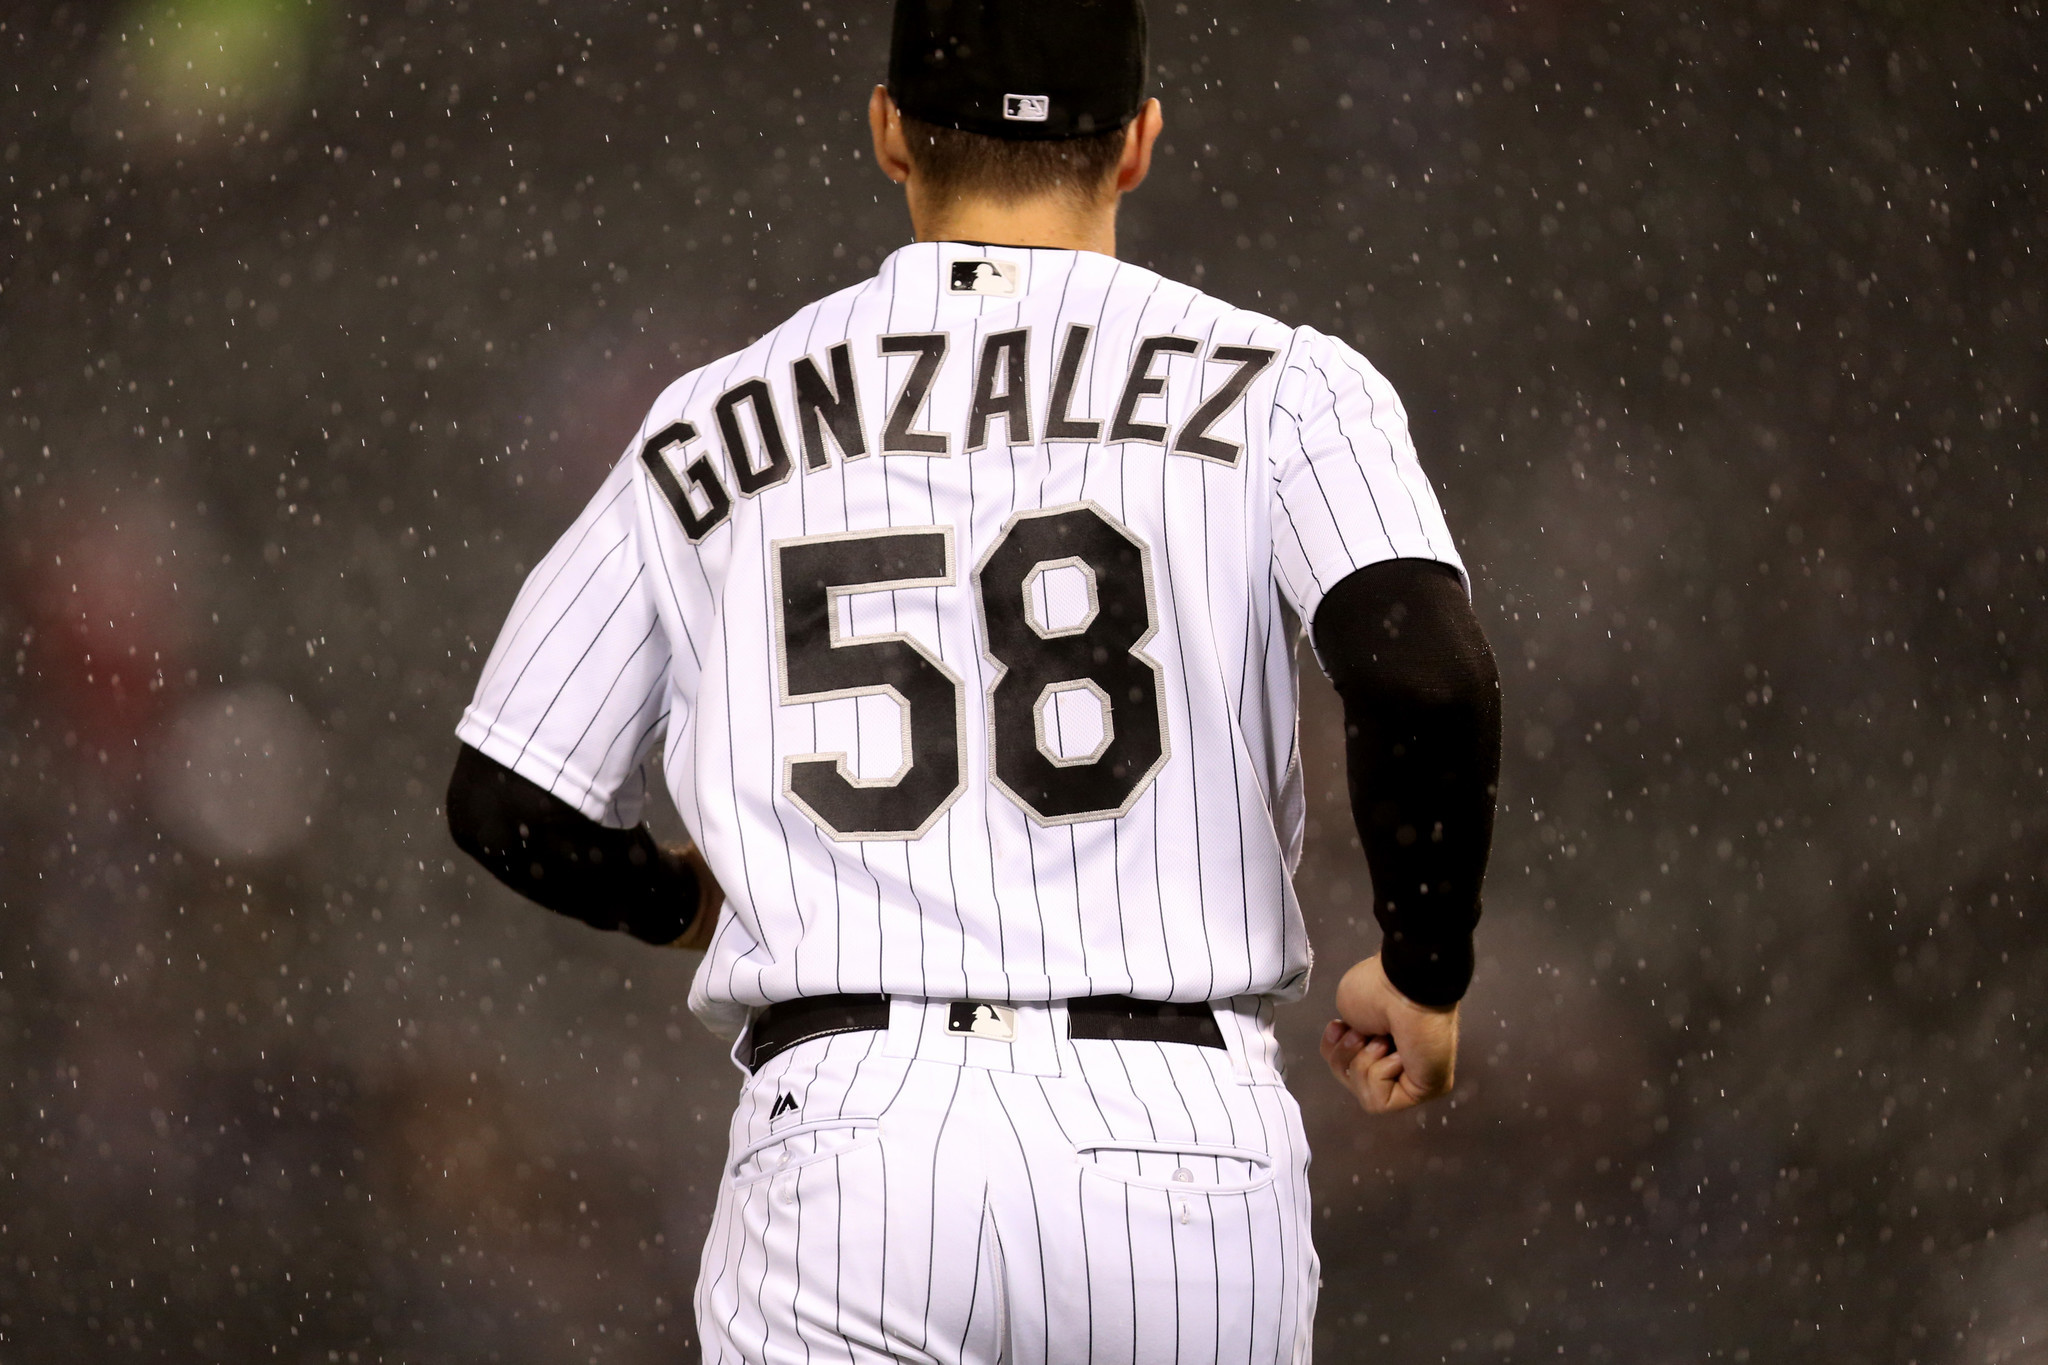 Ct-gonzalez-frazier-lift-white-sox-spt-0929-20160928